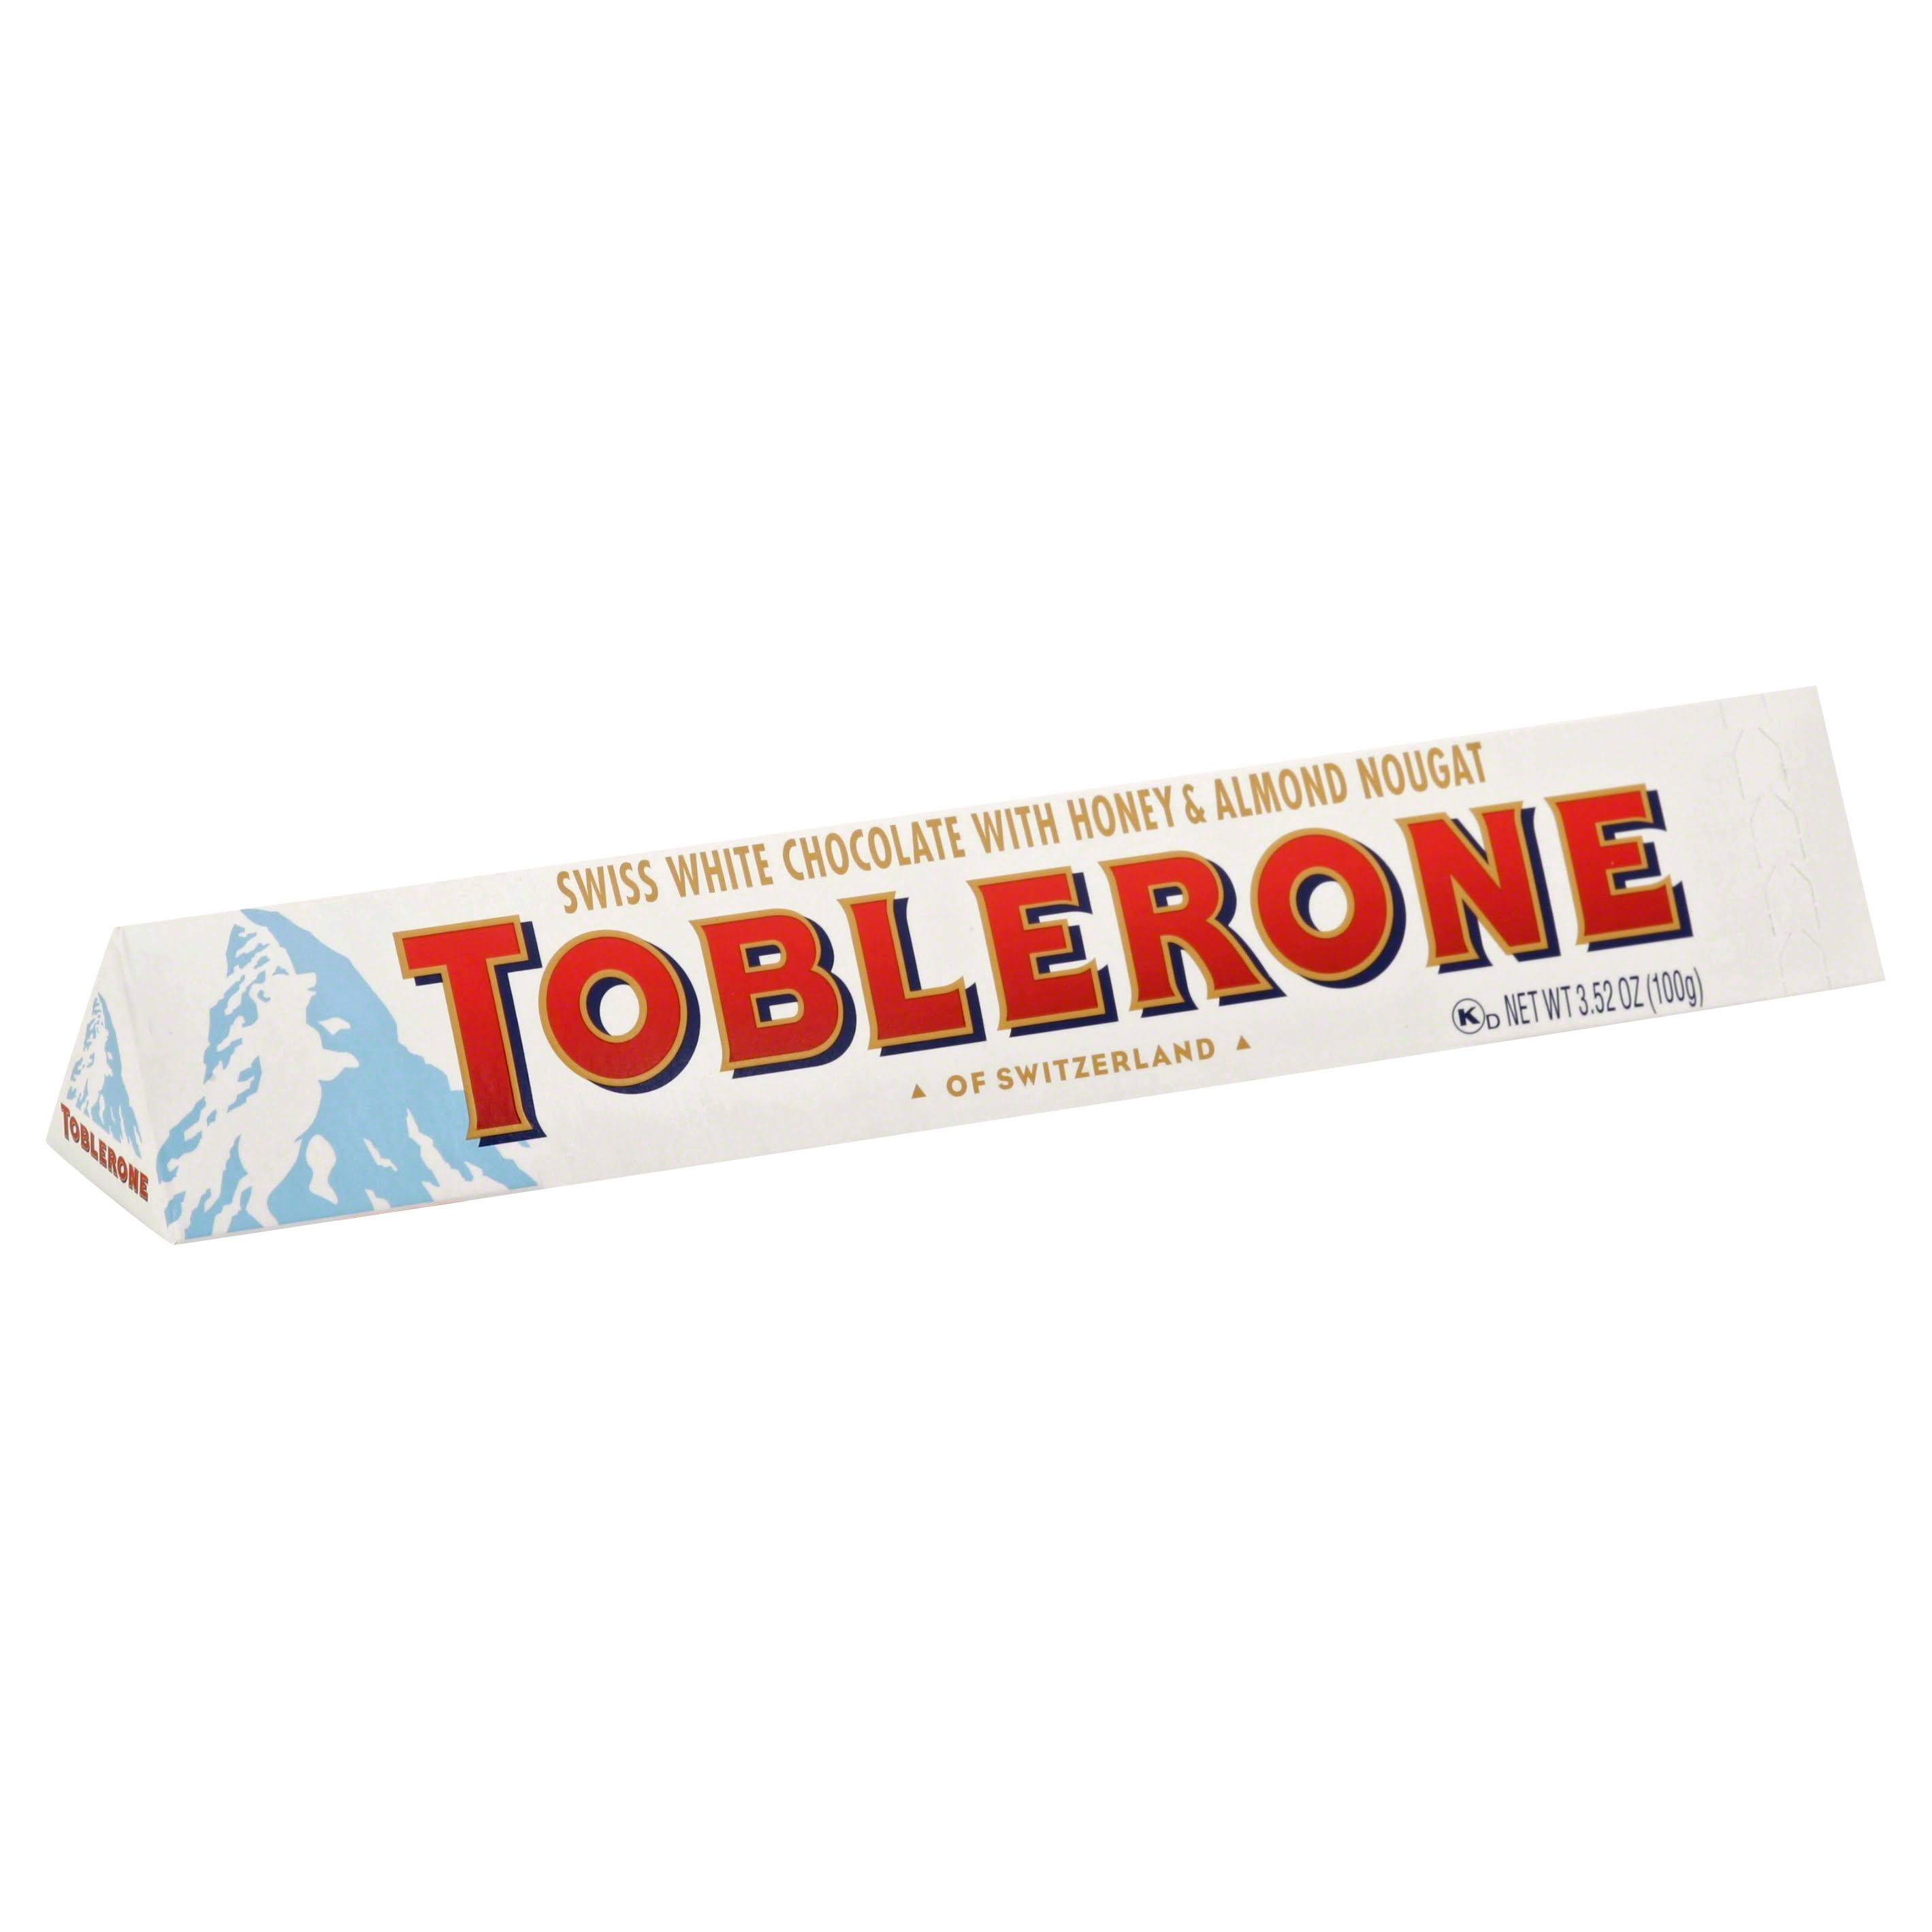 Toblerone White Chocolate, Swiss, with Honey & Almond Nougat - 3.52 oz